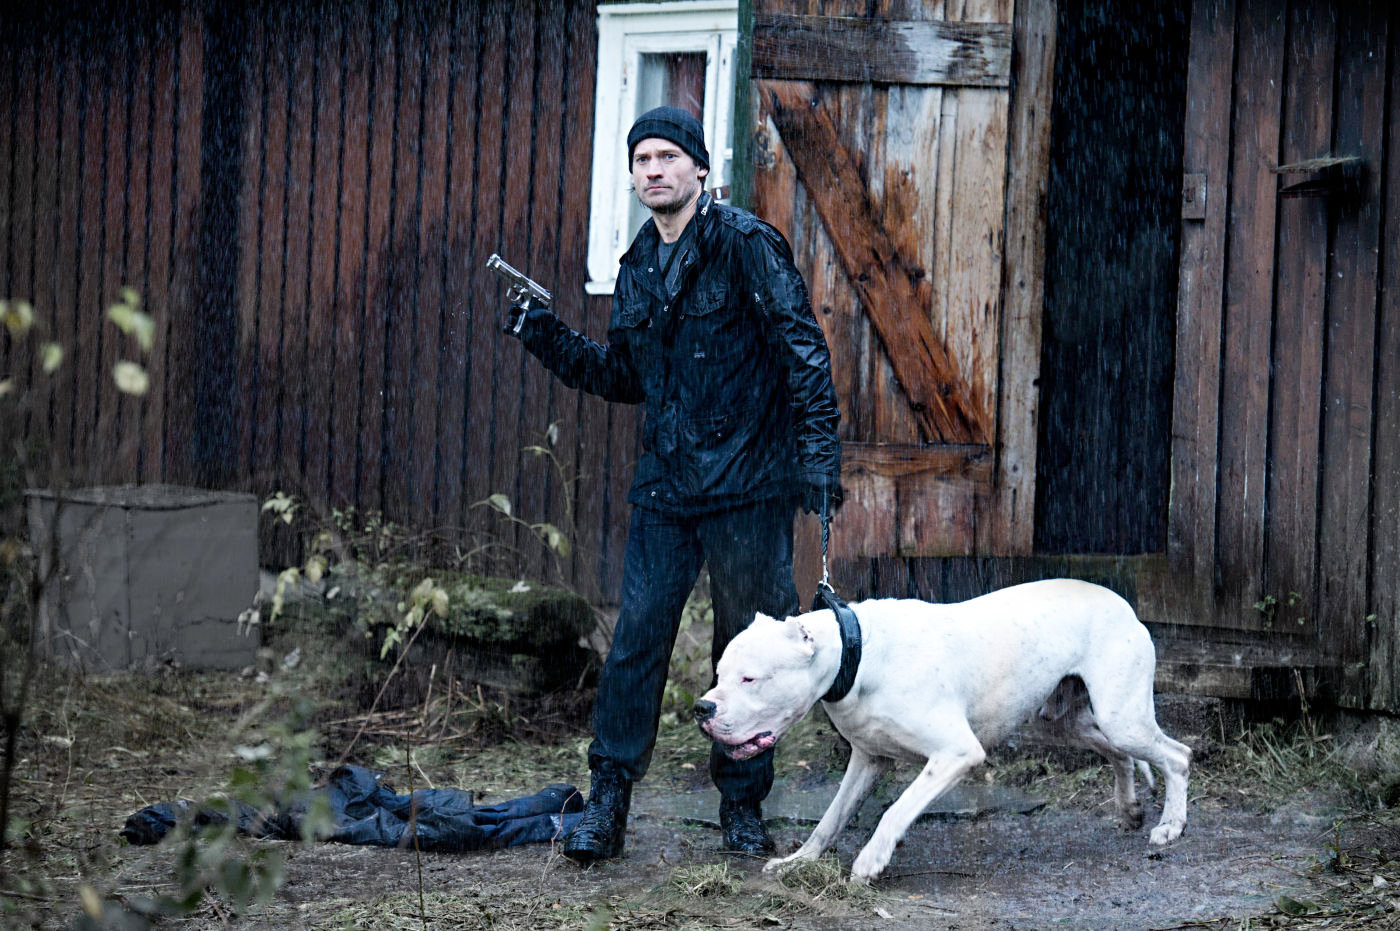 Clas (Nikolaj Coster-Waldau) and his friendly pooch are out for a walk.